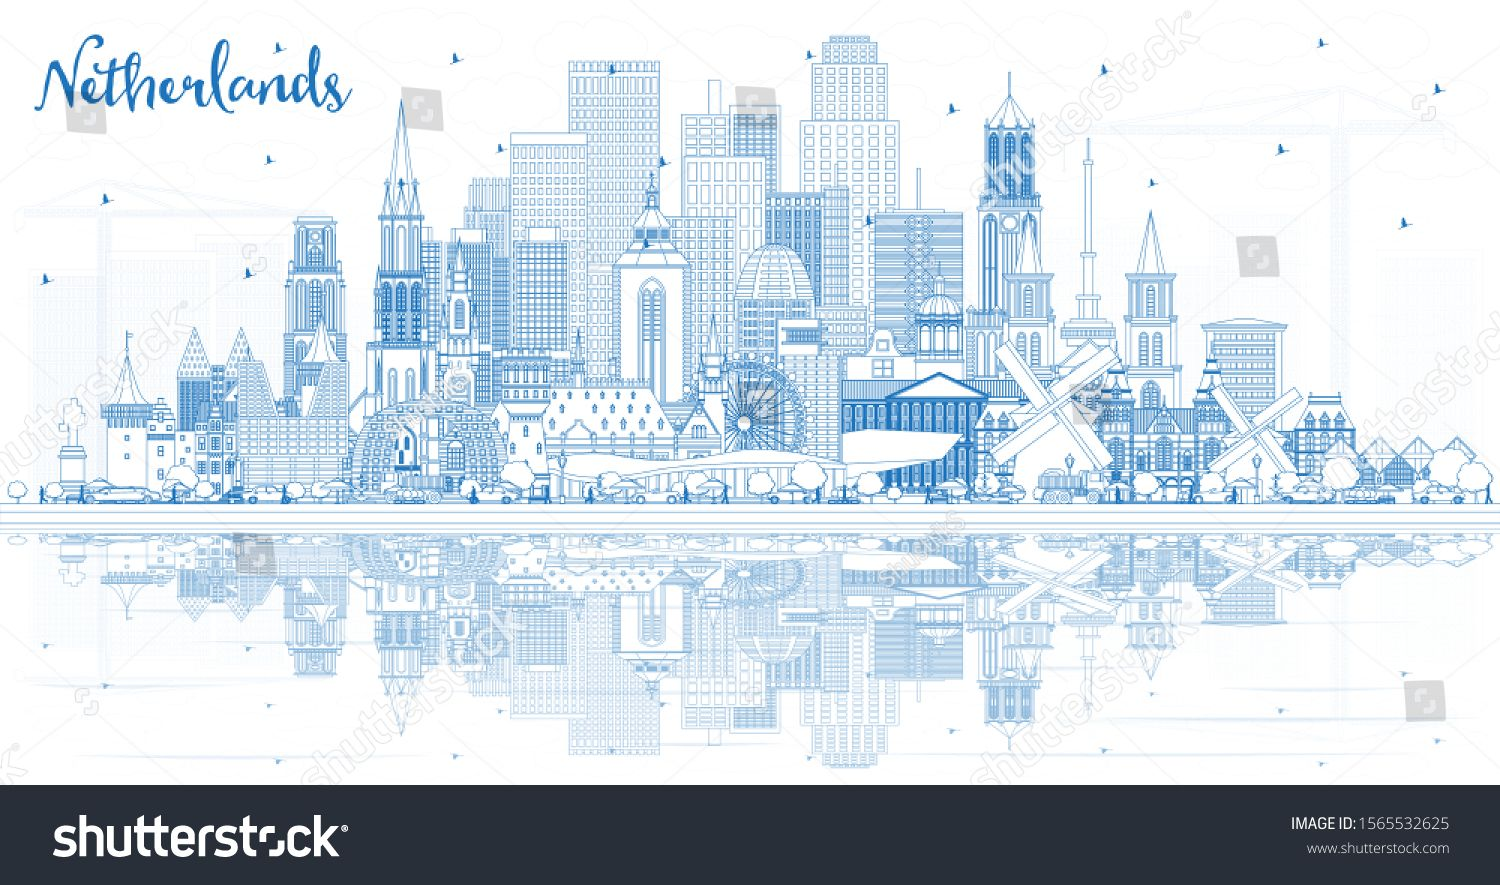 Outline Netherlands Skyline with Blue Buildings. Vector Illustration. Tourism Concept with Historic